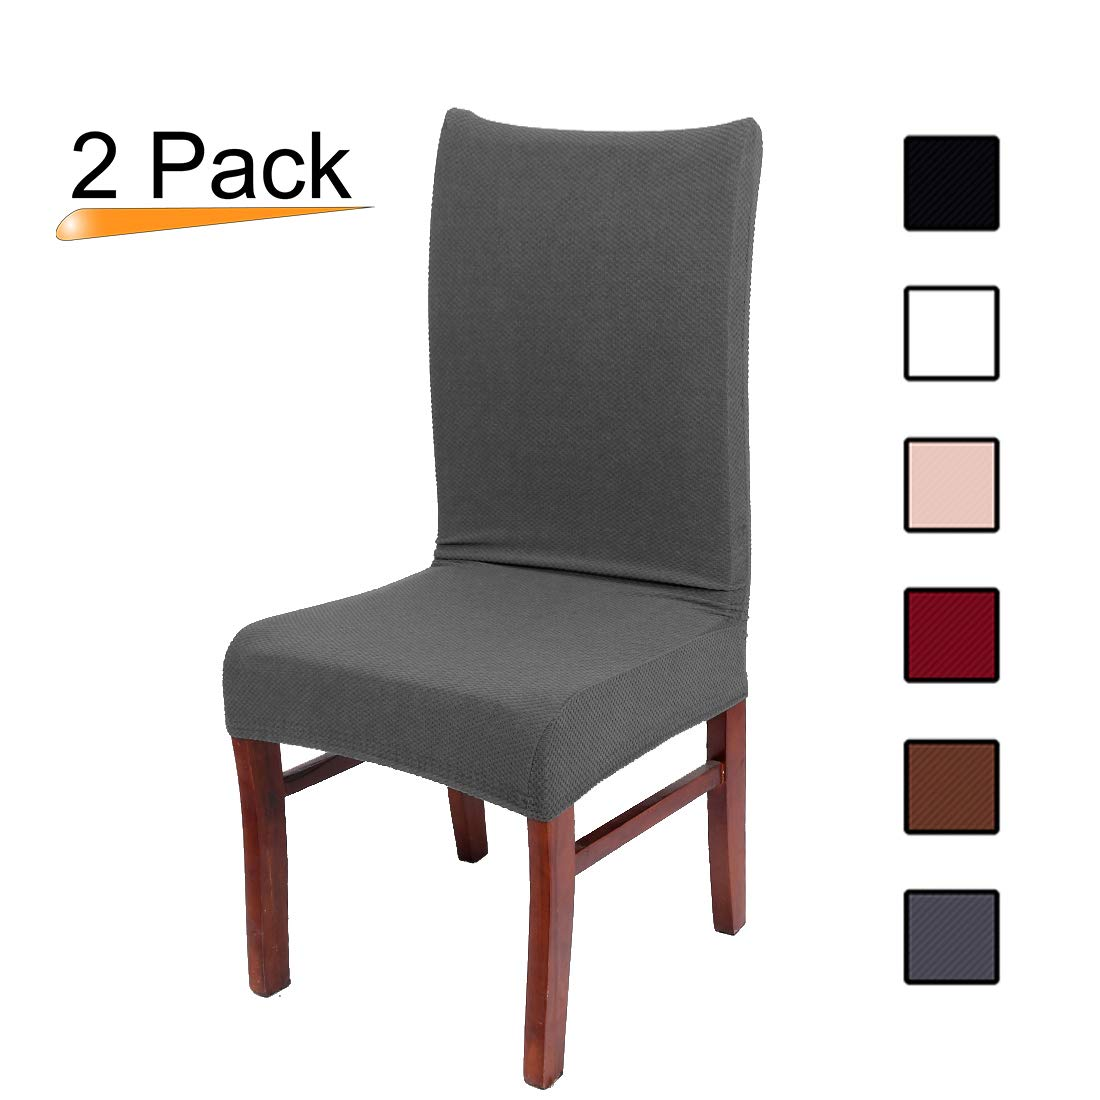 Colorxy Stretch Dining Room Chair Slipcovers - Spandex Fabric Removable Chair Protector Jacquard knitted Home Decor Set of 2, Grey